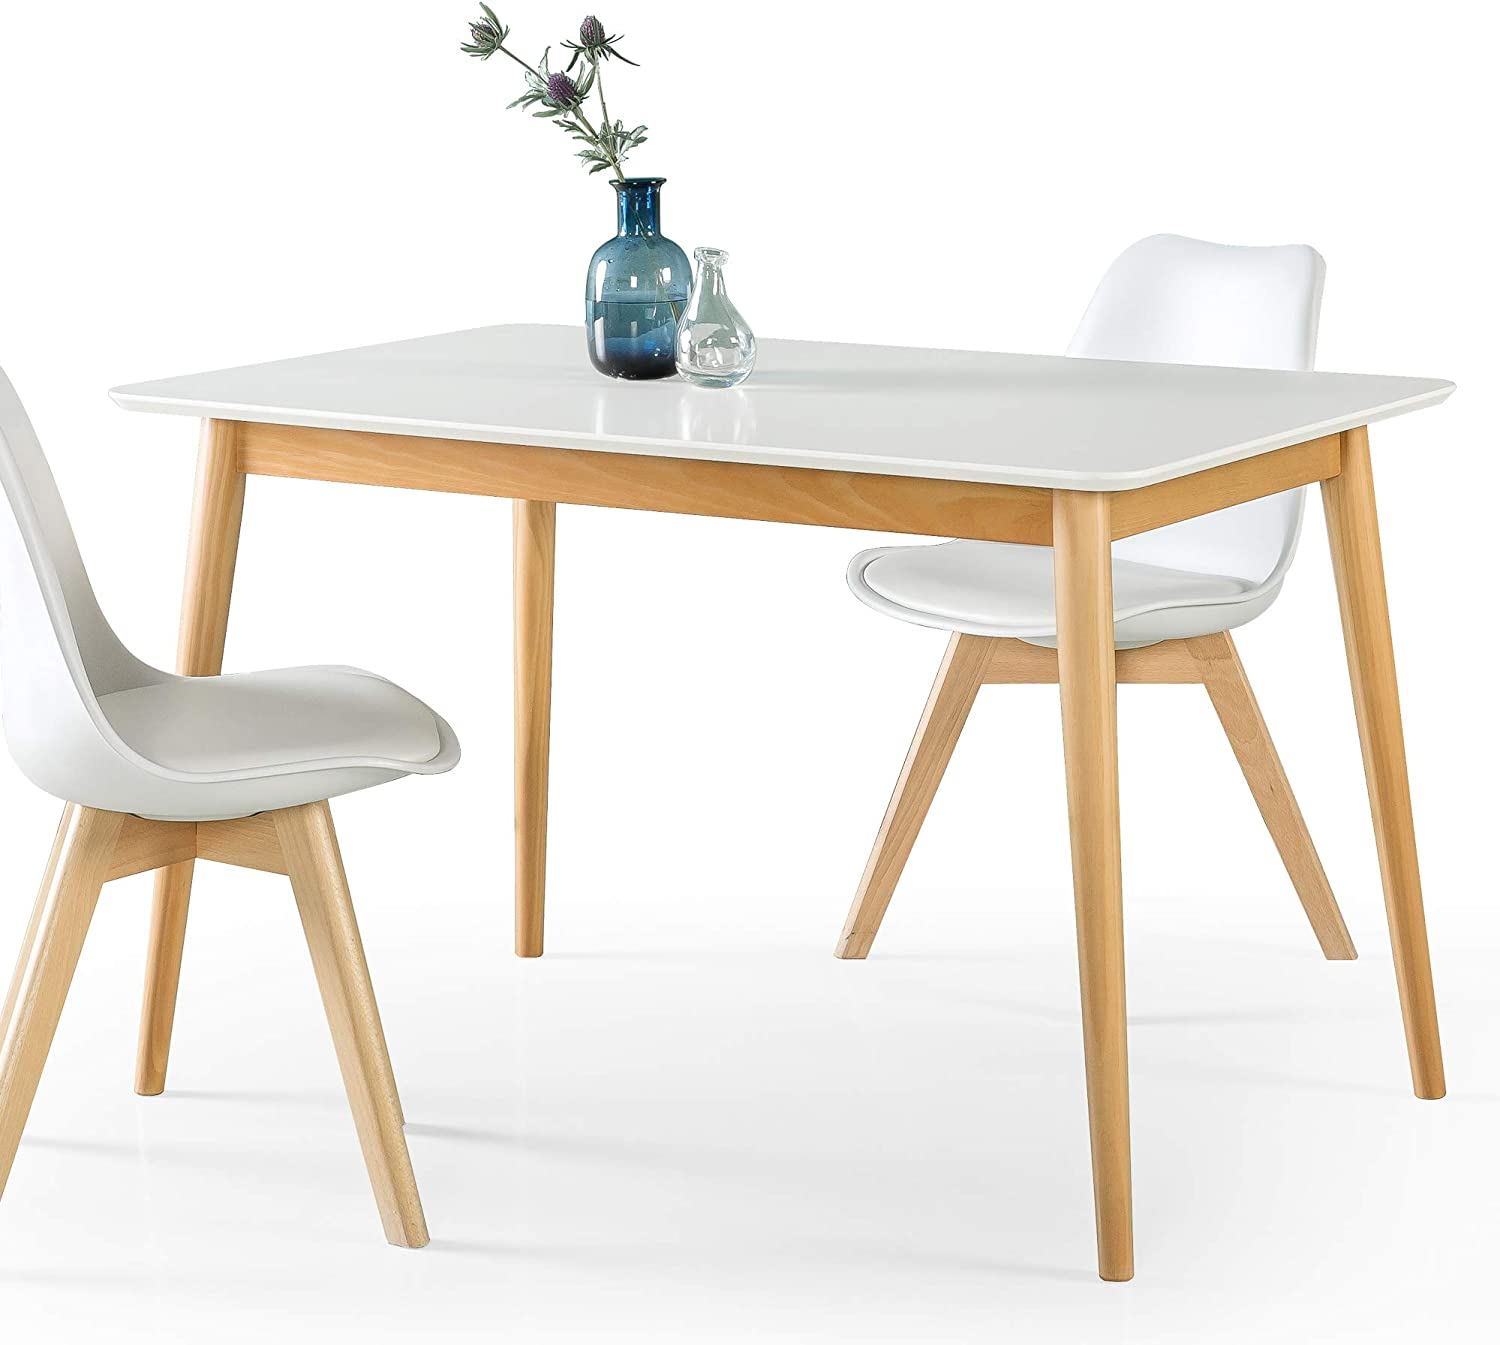 ZINUS Jen 47 Inch Wood Dining Table / Kitchen Table / Easy Assembly, White